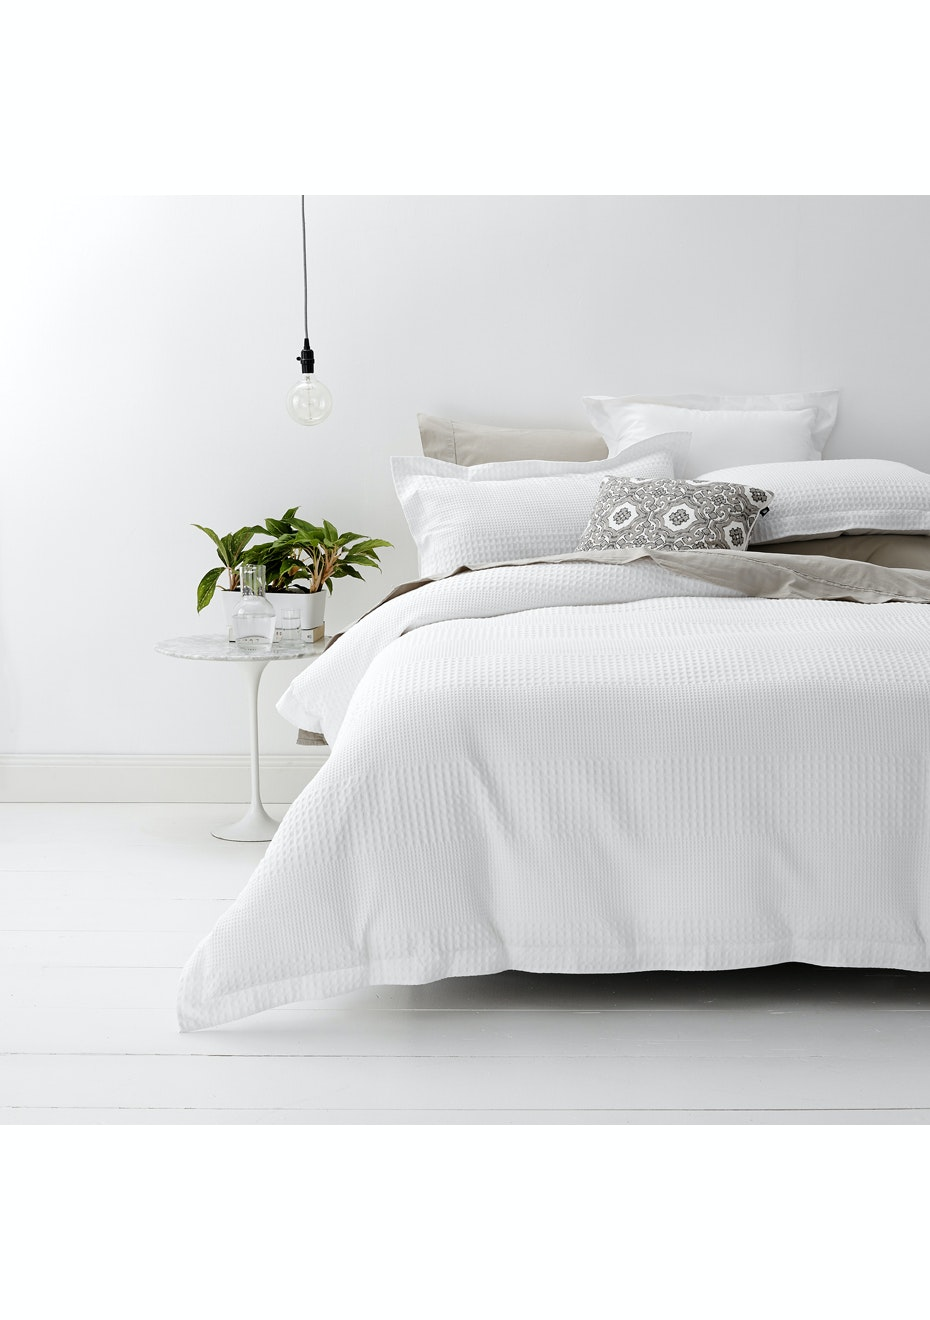 Style & Co 100 % Cotton Jacquard Waffle Quilt Cover set Double Bed White